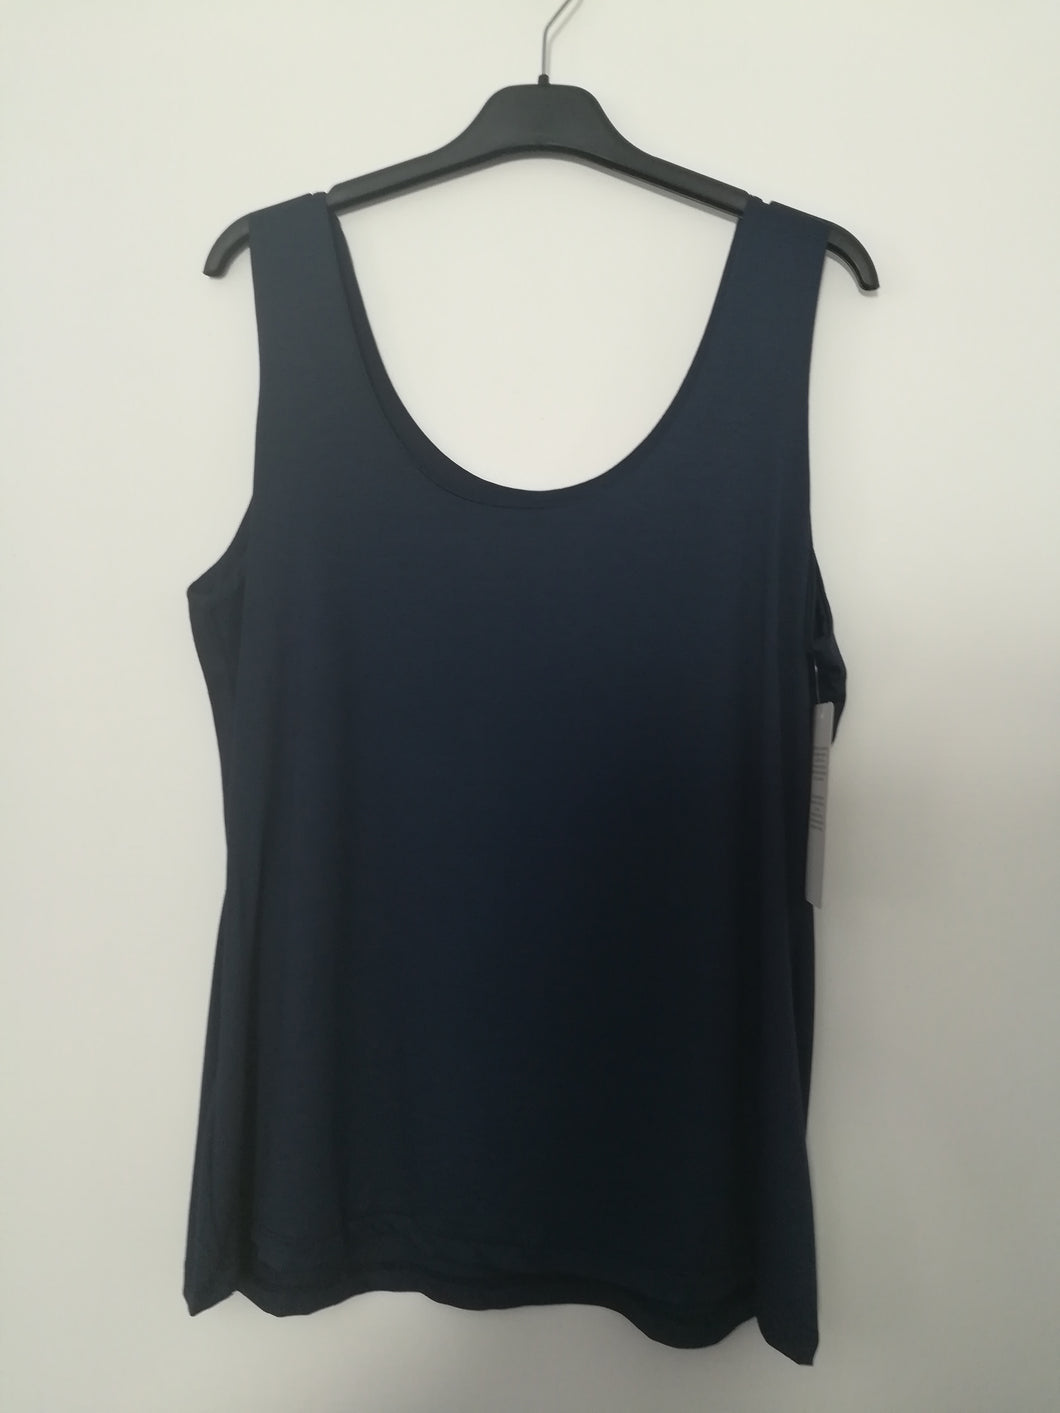 Stretchy Basic Vest with Bust Support one size 10/16 £14